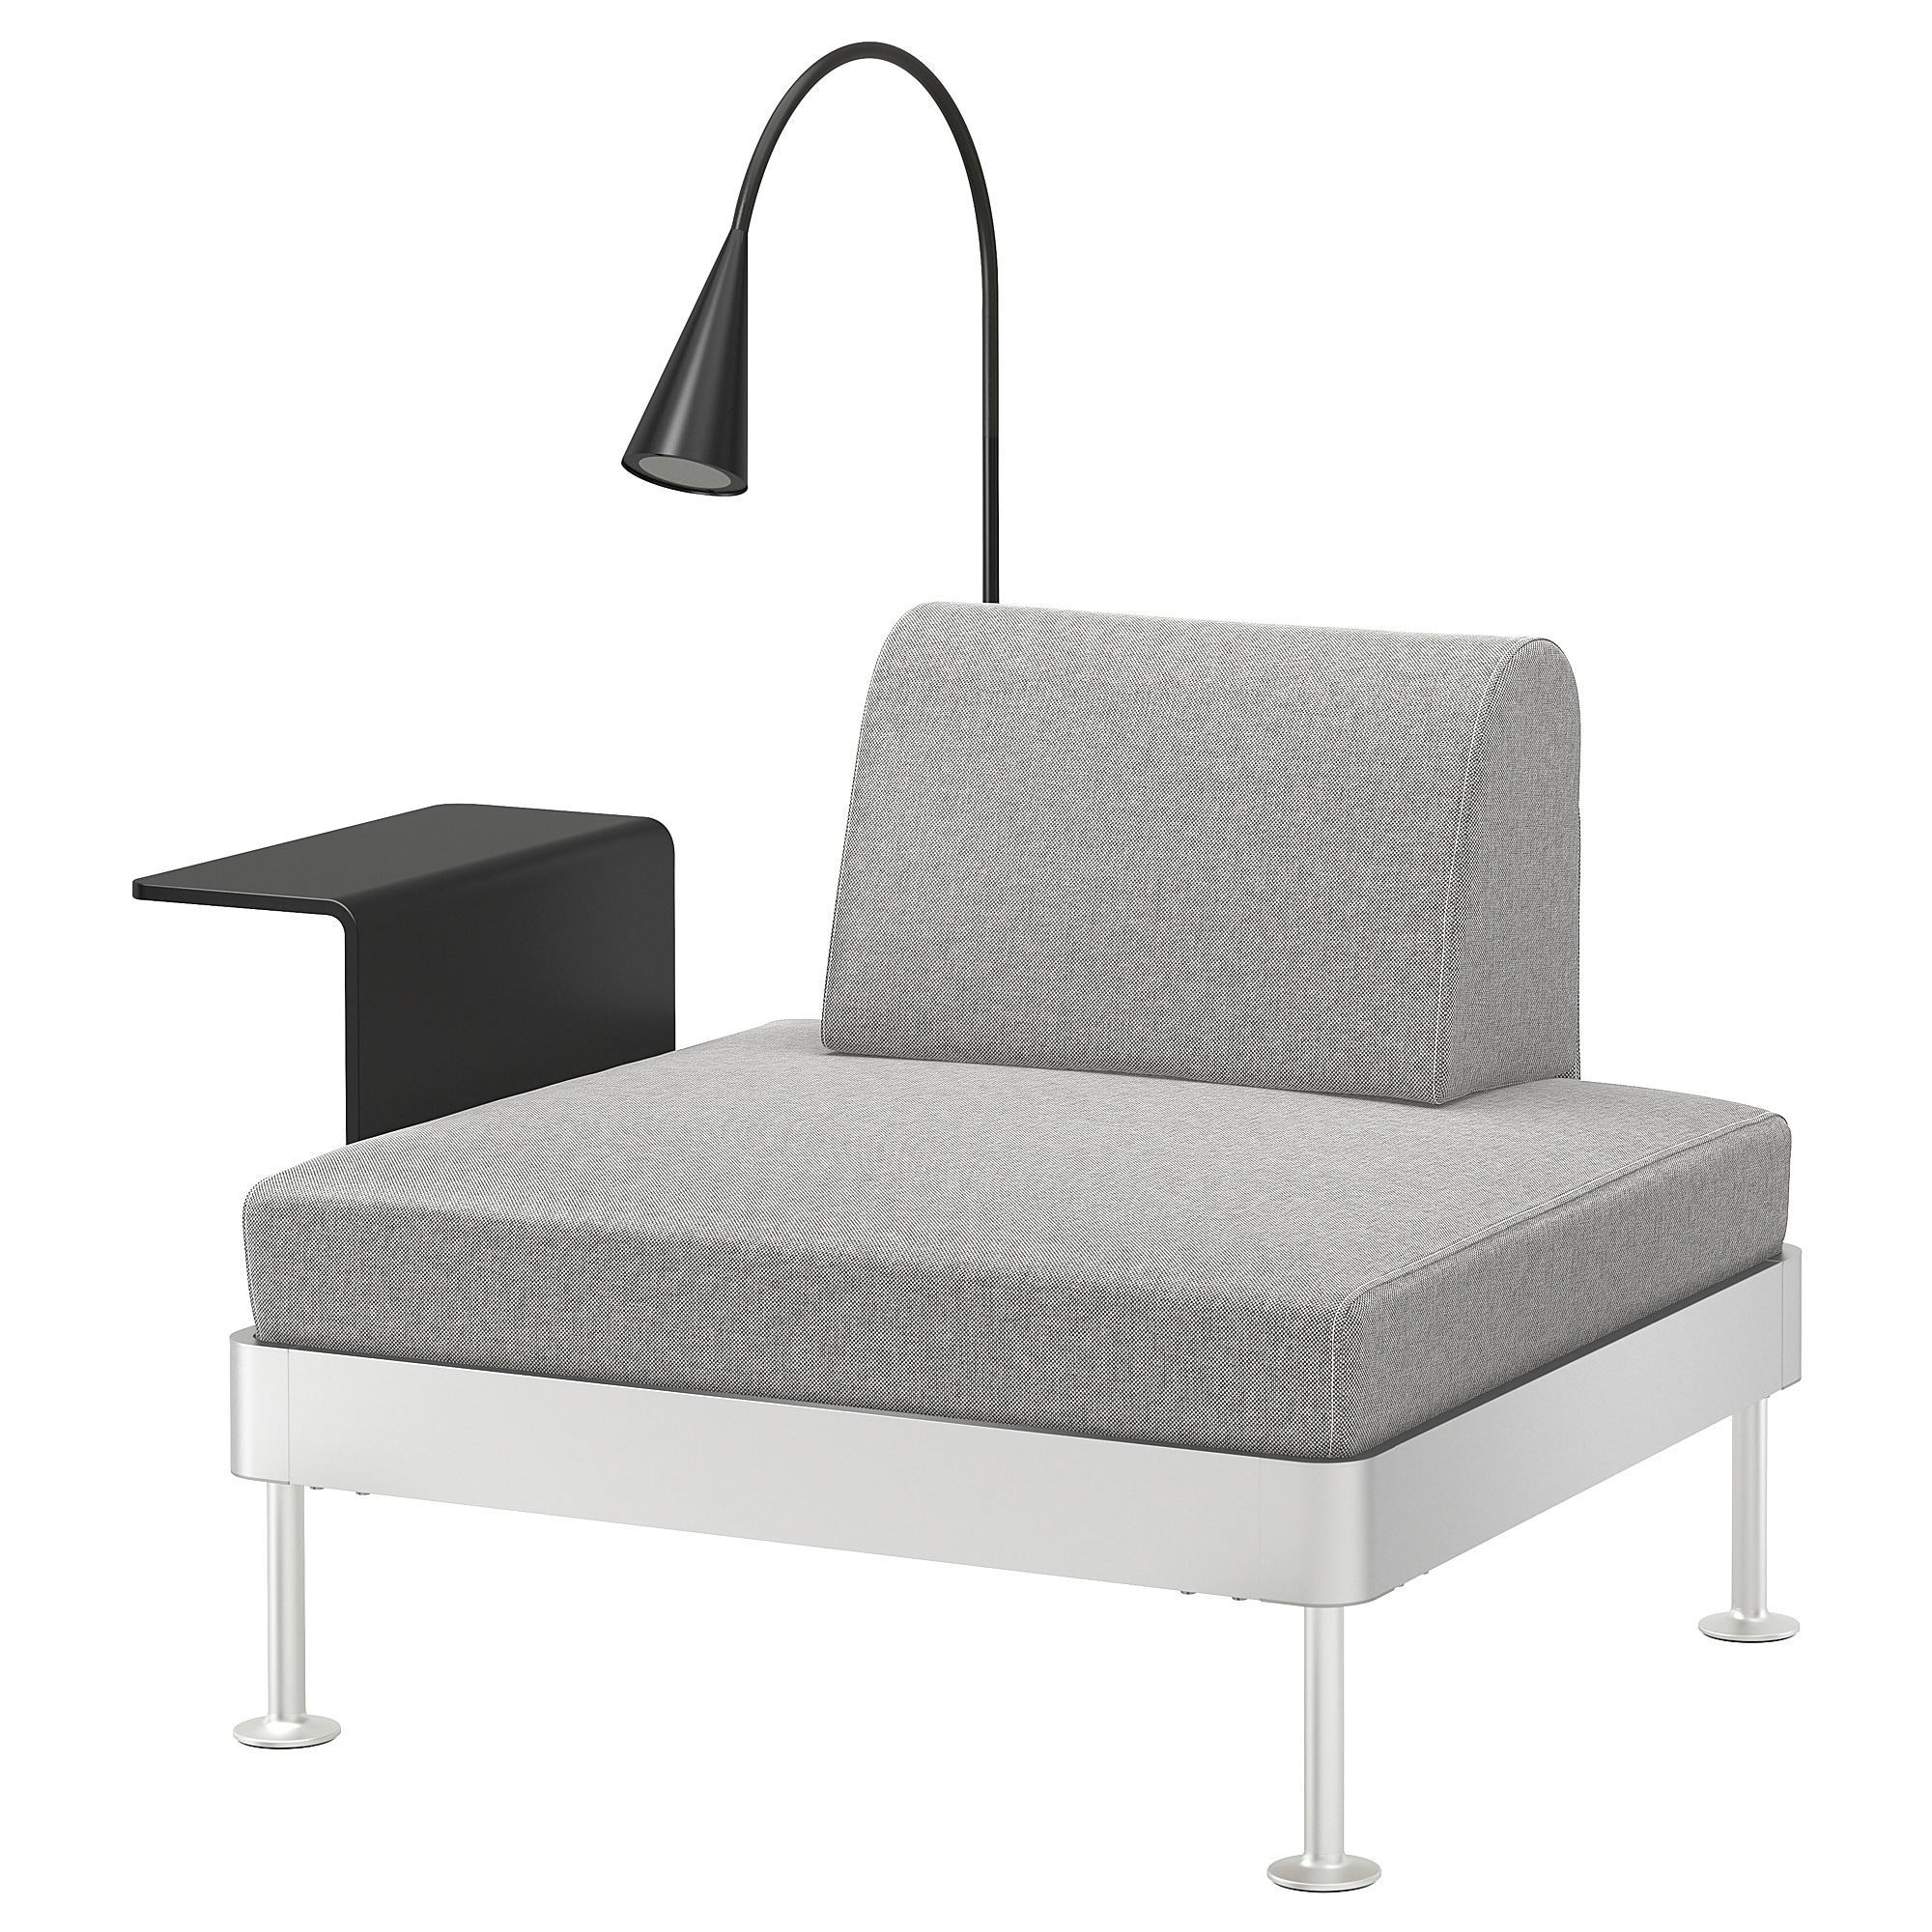 reputable site 3c06a 01d2d Armchair with side table and lamp DELAKTIG Tallmyra white/black